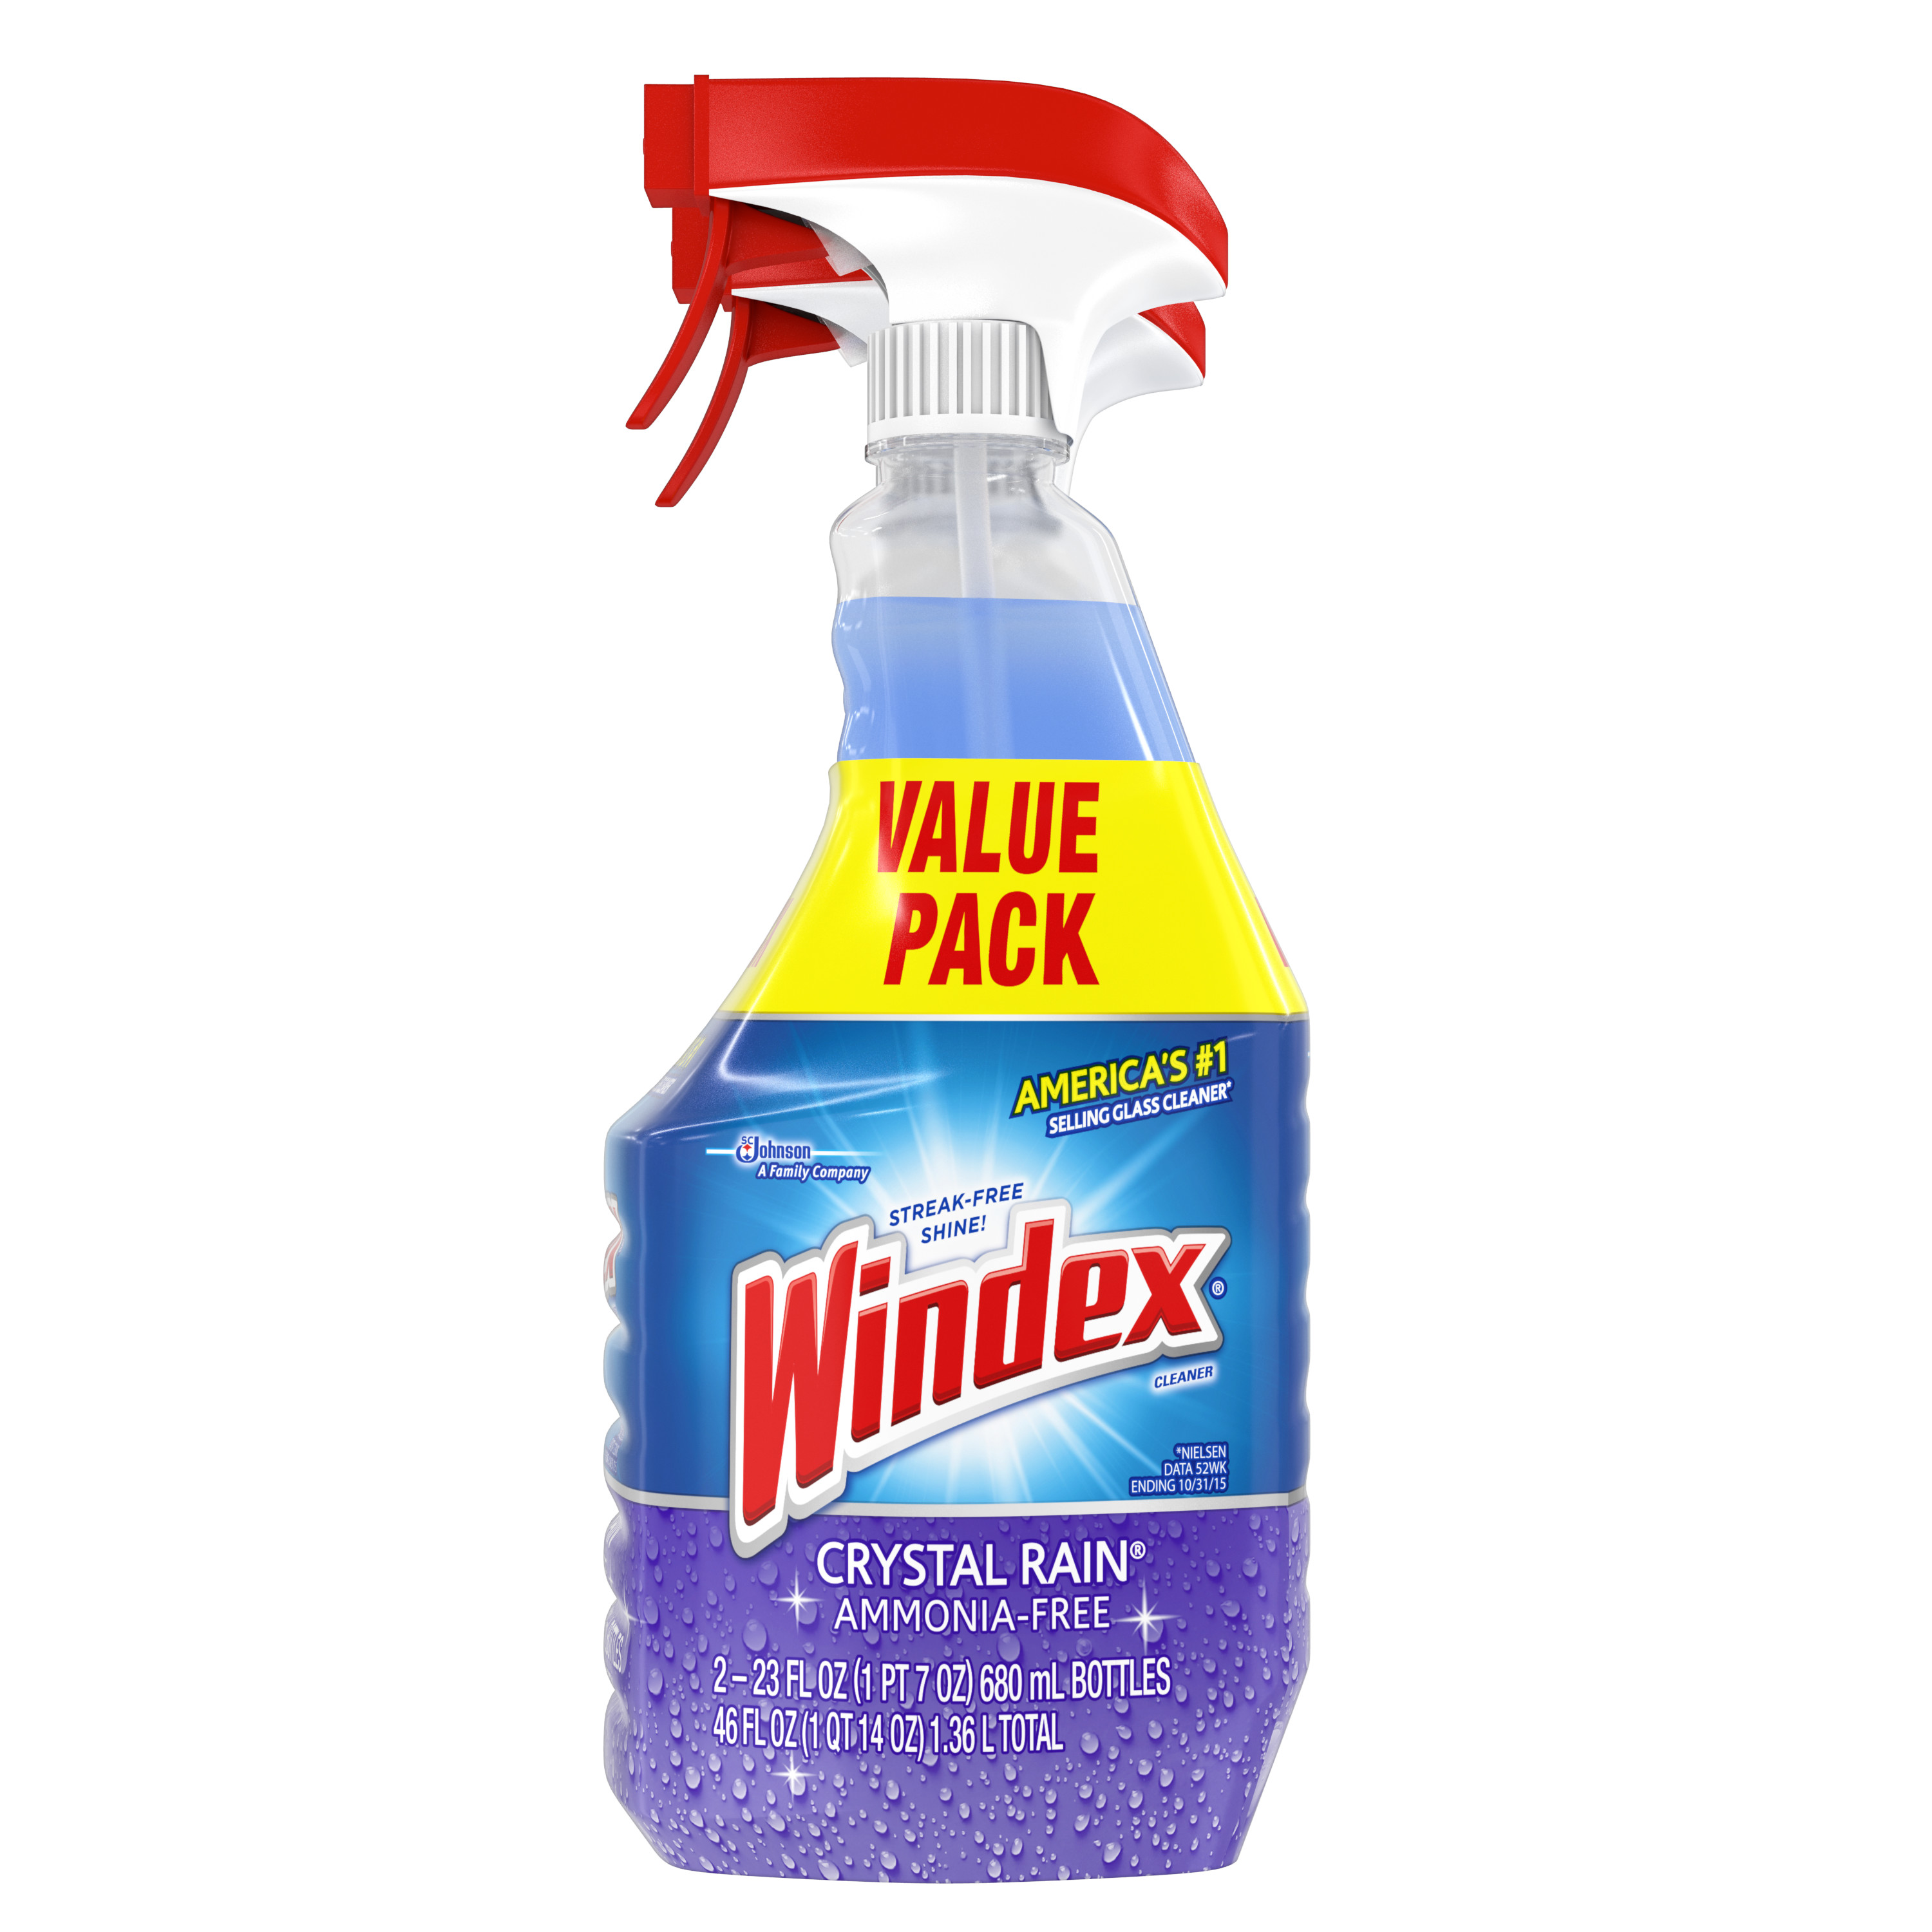 Windex Crystal Rain Glass Cleaner, 23 Fluid Ounces, 2 count